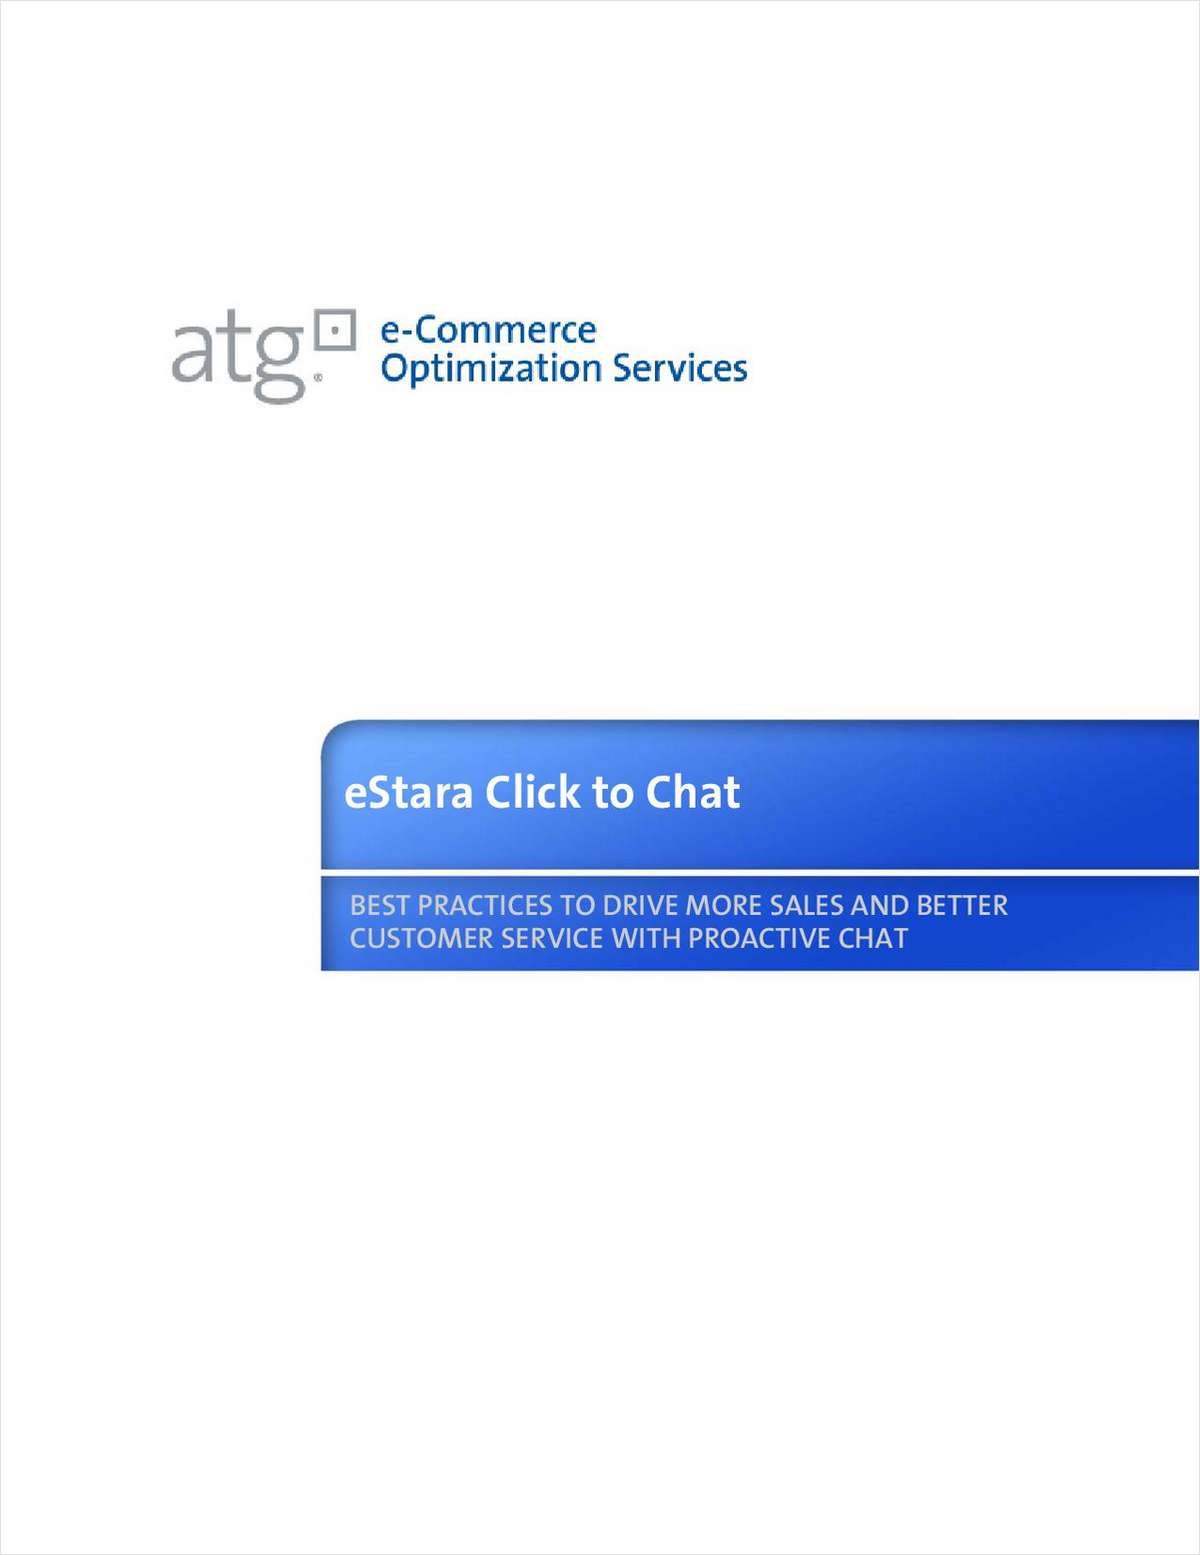 Click to Chat: Best Practices to Drive More Sales and Better Customer Service with Proactive Chat